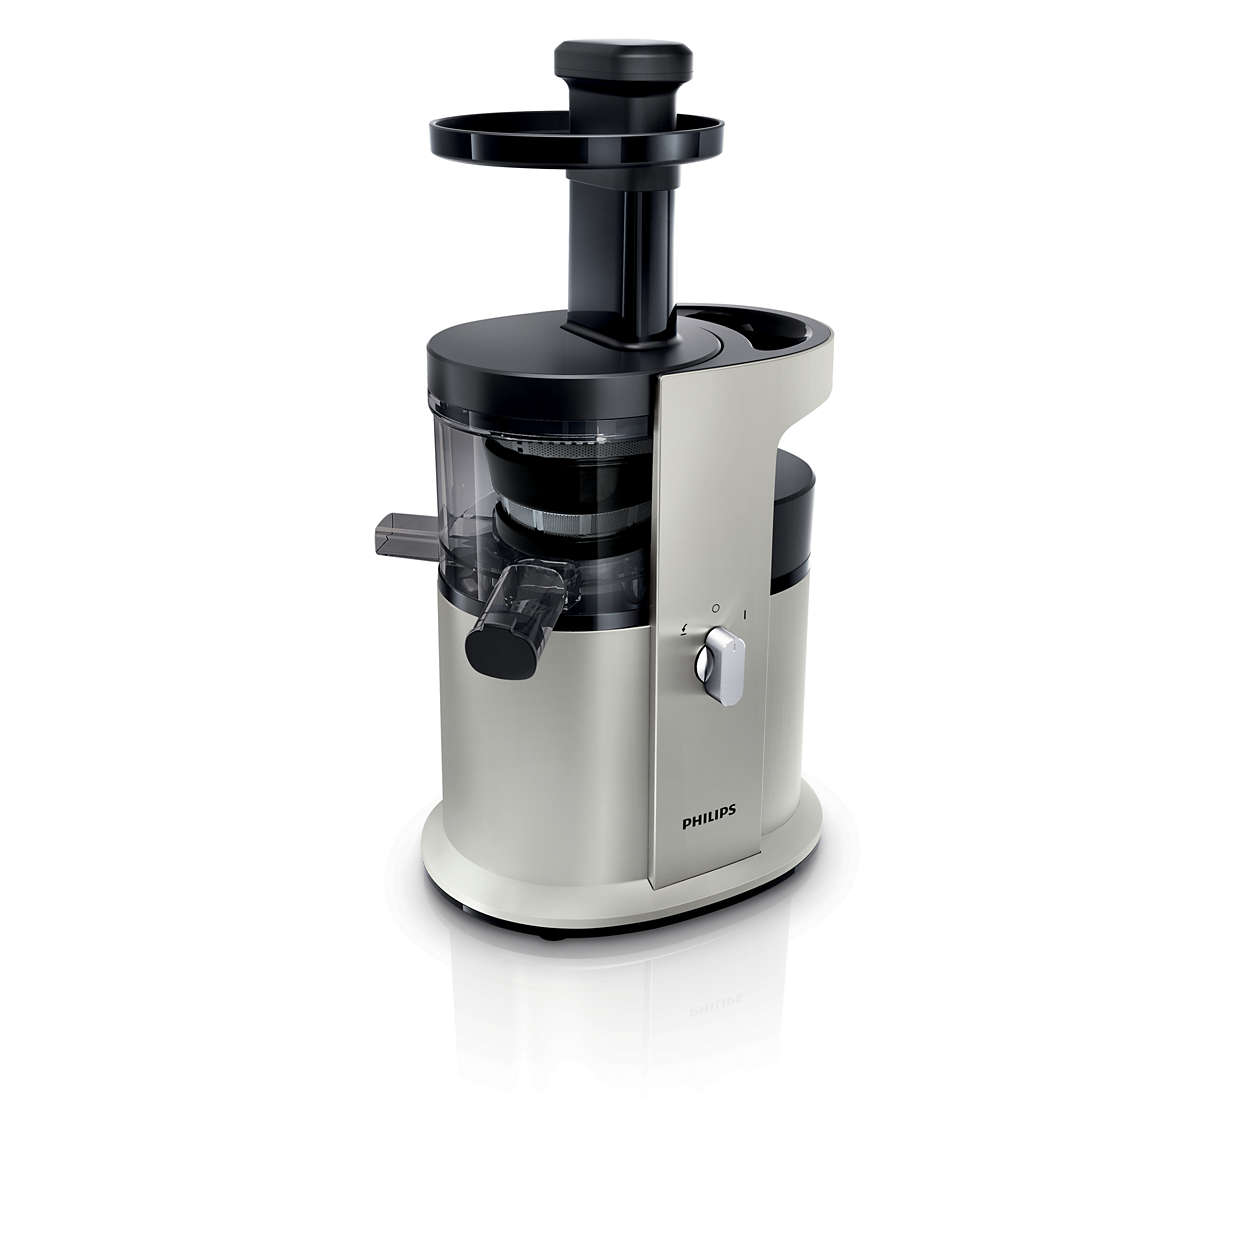 Slow Juicer Ie : Avance Collection Slow Juicer HR1882/31 Philips